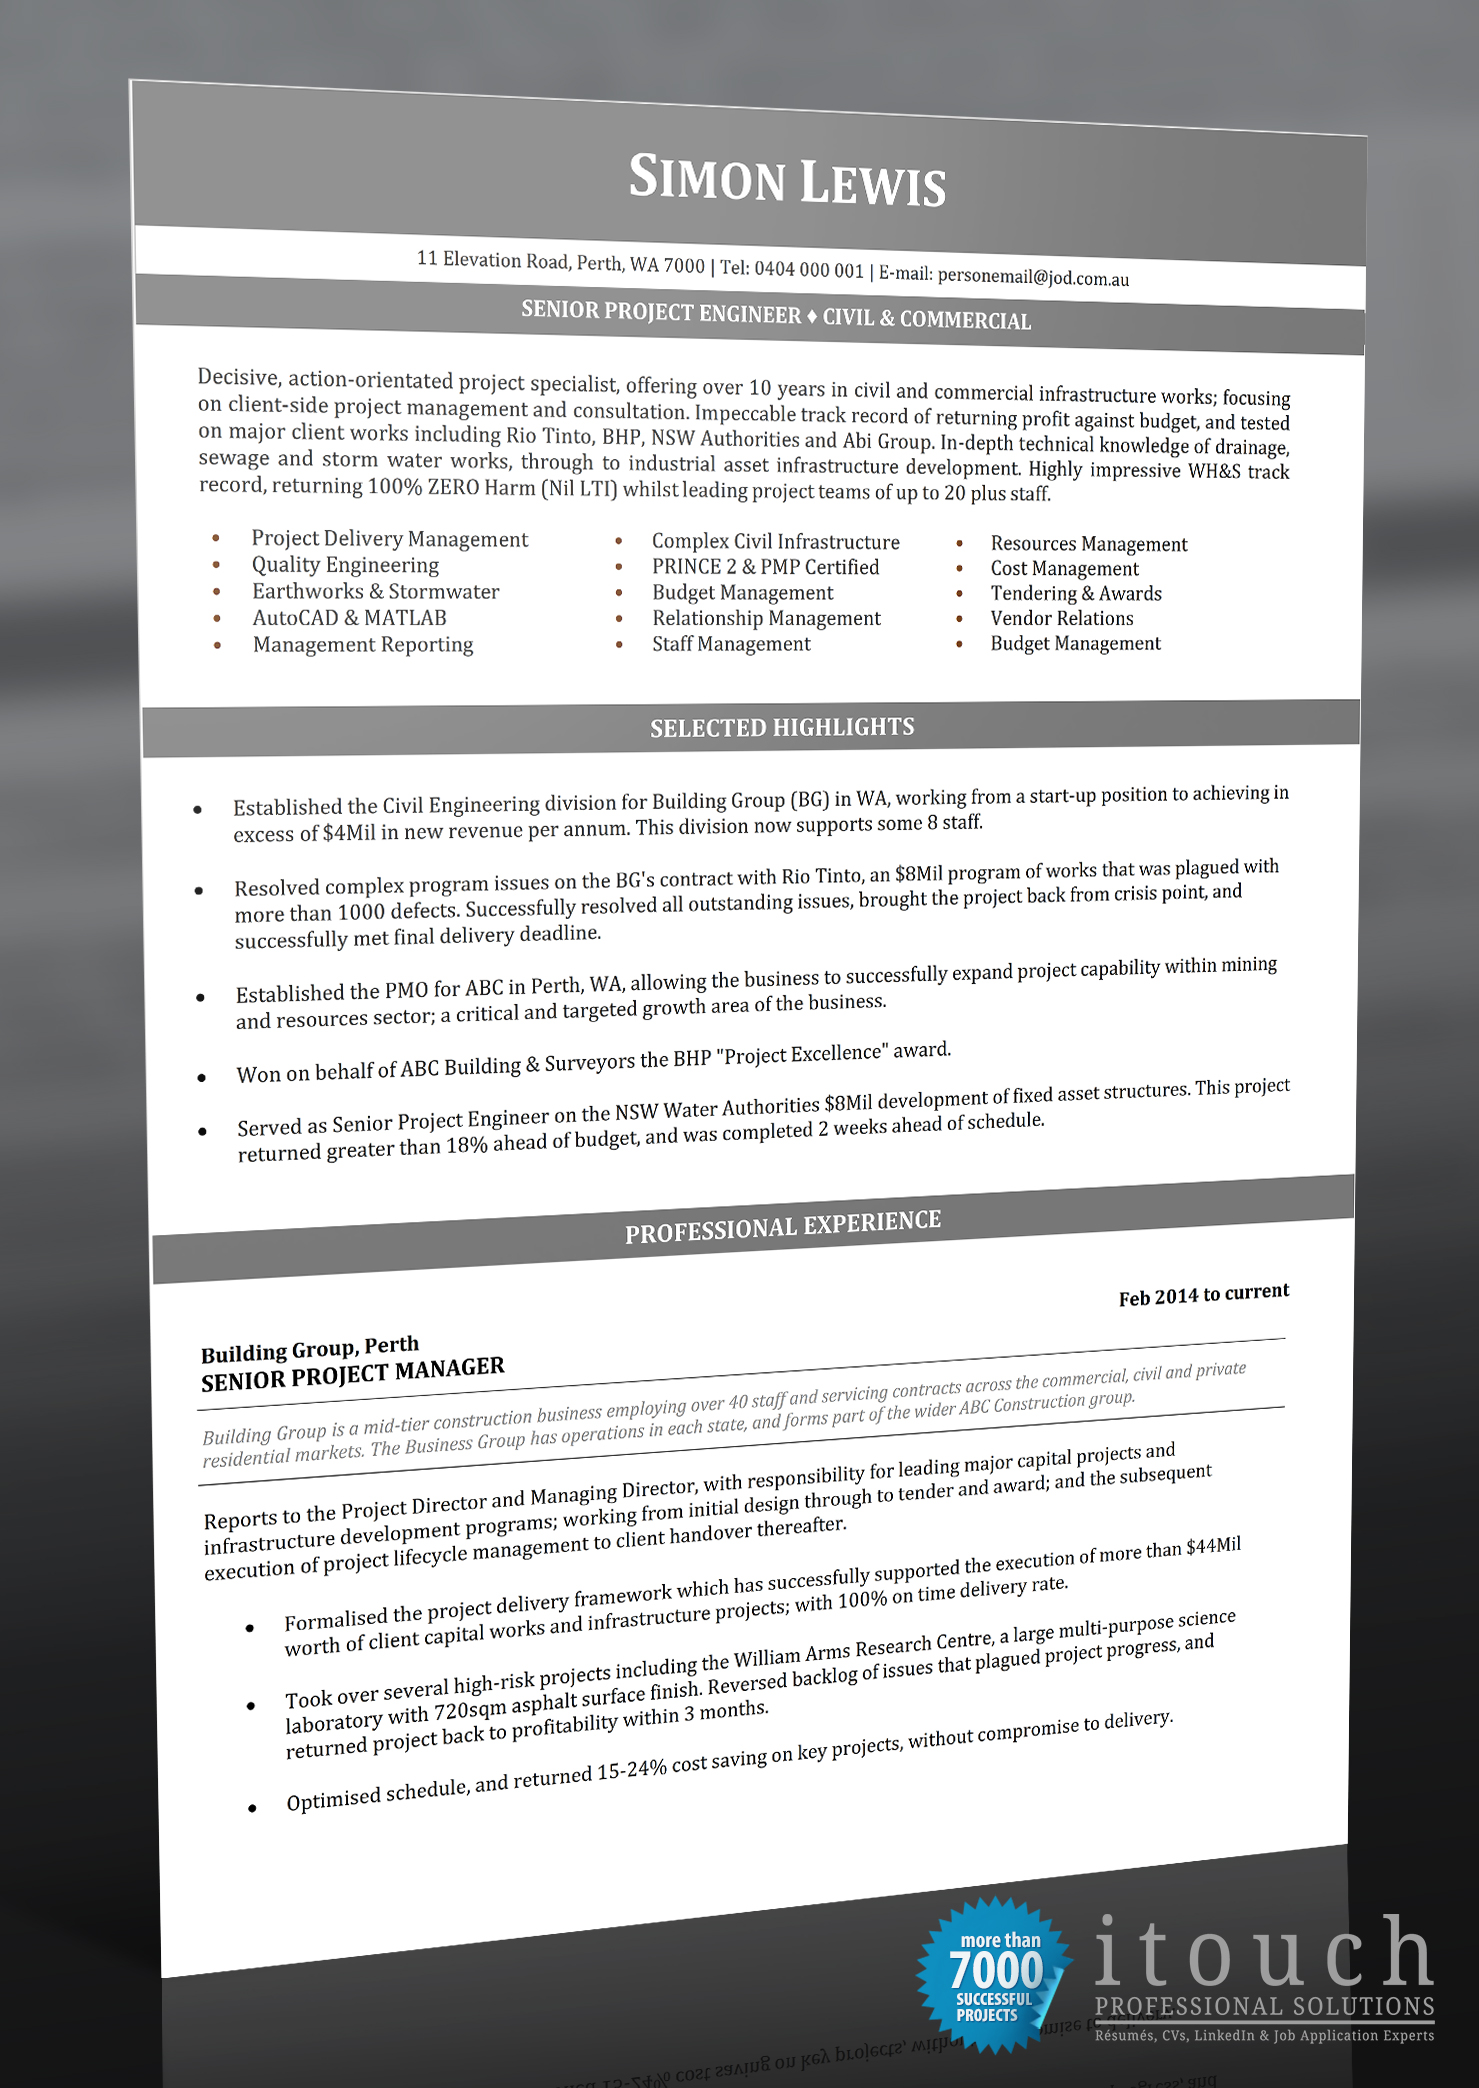 senior project engineer itouch resume writers